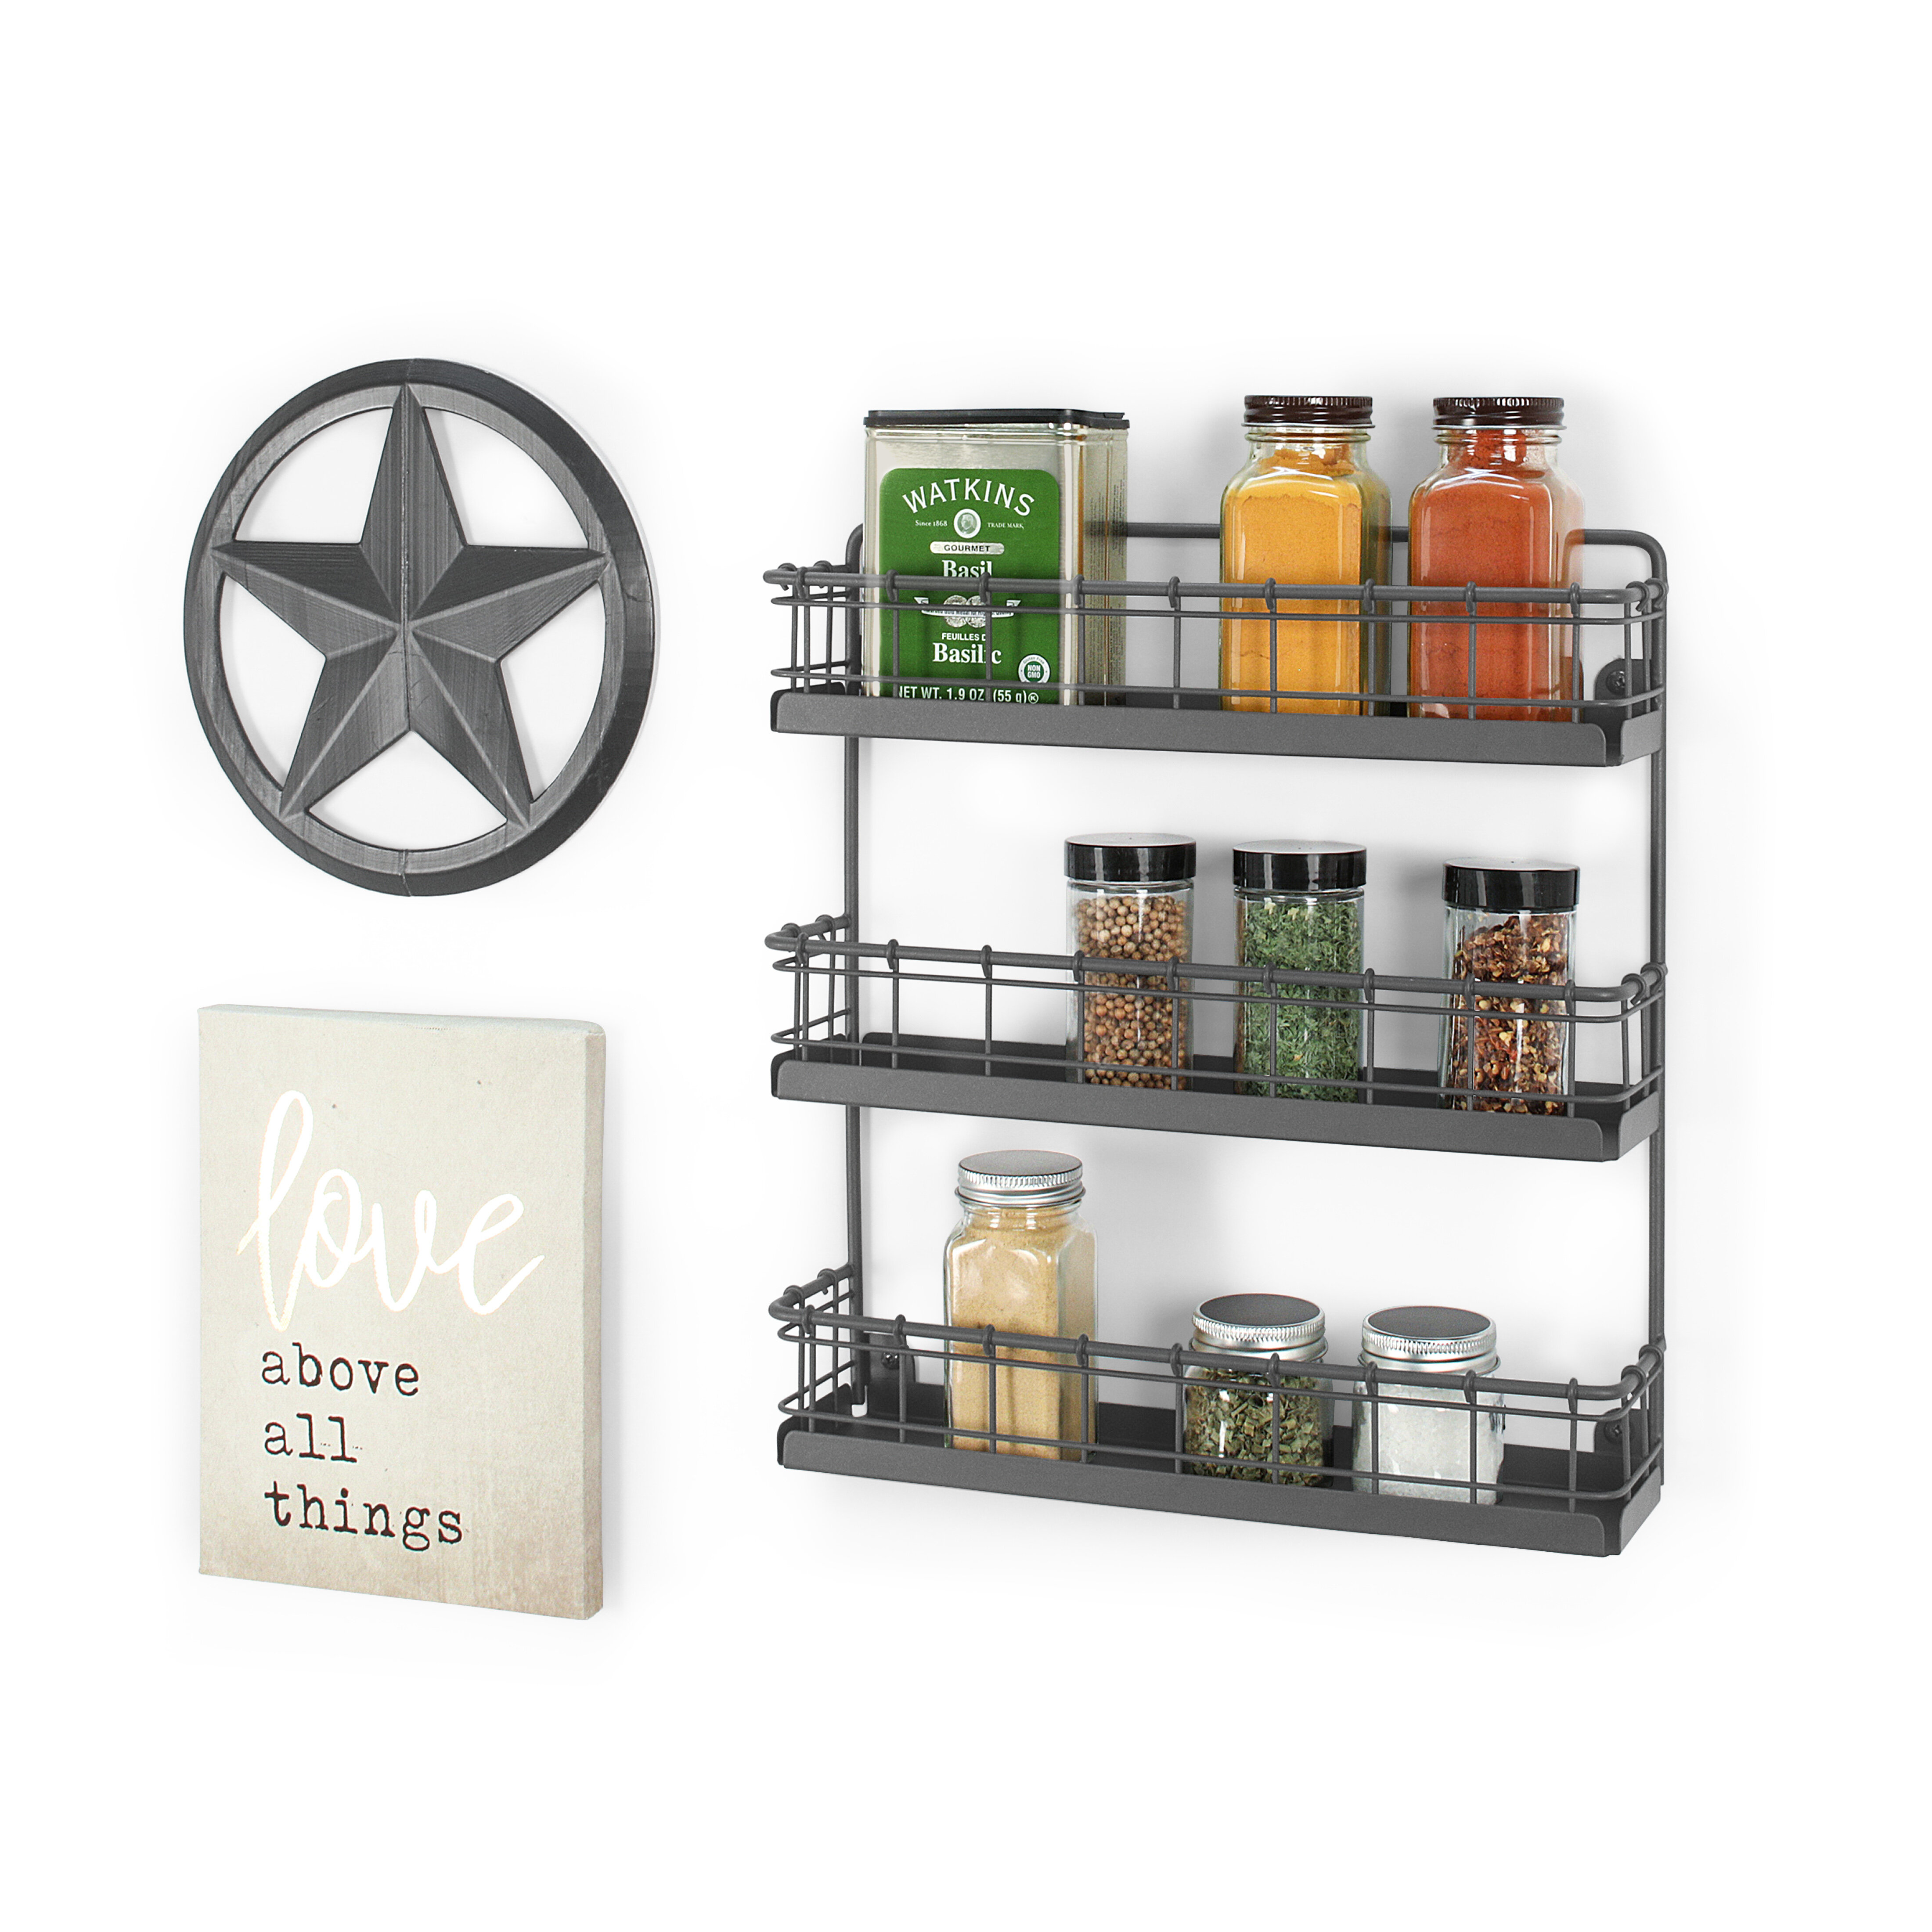 Rebrilliant Wall Mount Spice Rack Reviews Wayfair